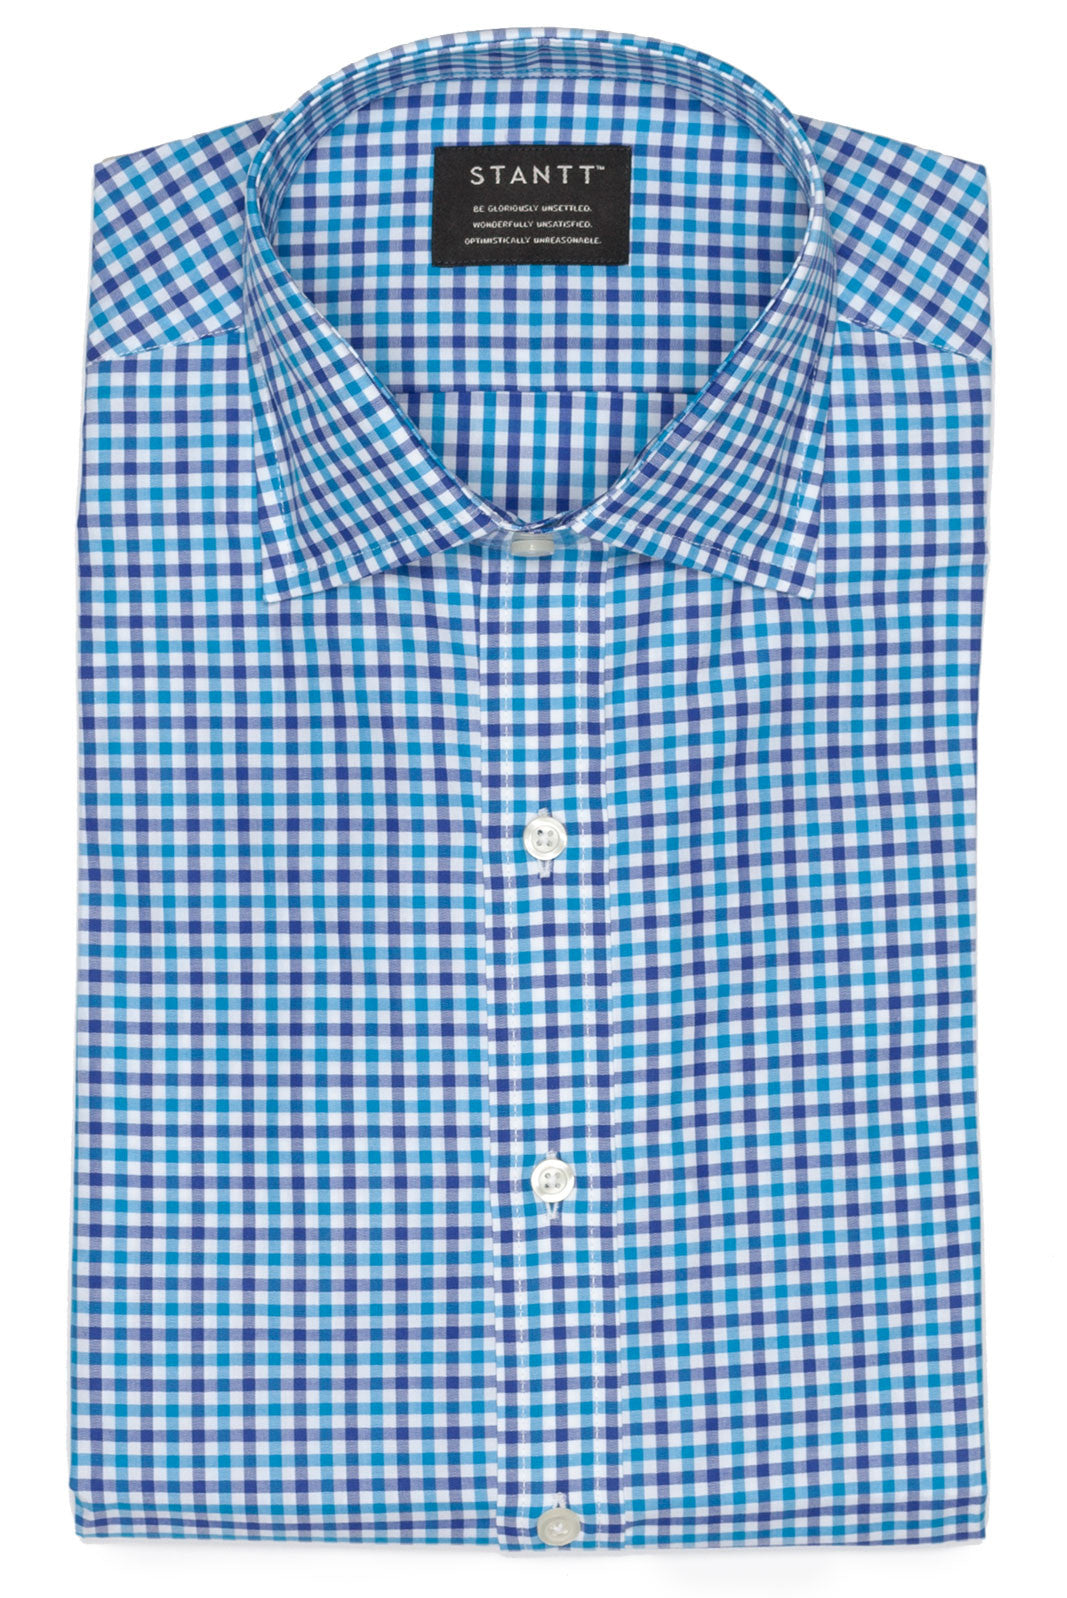 Navy and Aqua Gingham: Semi-Spread Collar, Barrel Cuff